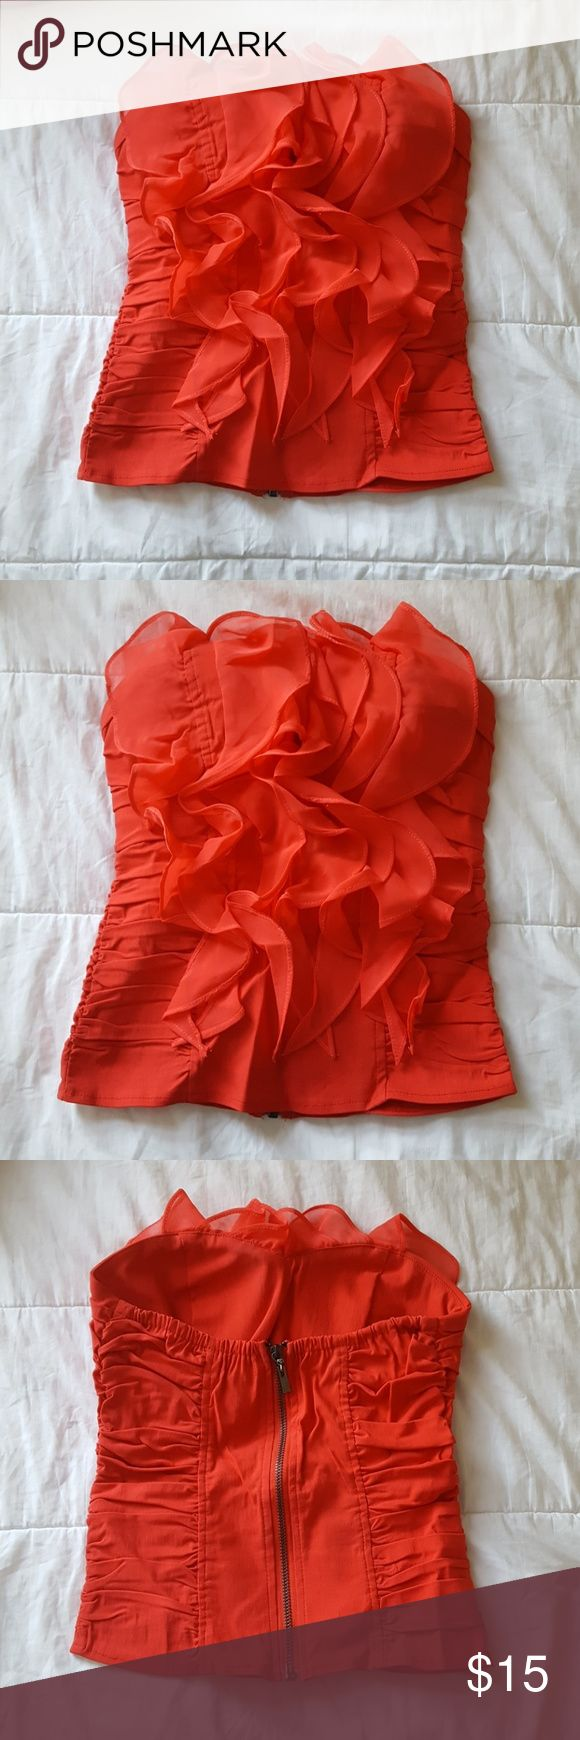 Body Central ruffle tube top Sexy ruffle front tube top from Body Central is labeled orange, but also appears red. Like new and still in packaging, purchased but never worn, so it is in perfect condition. Has a zip back and pad inserts in shelf so it can be worn without a bra. Body Central Tops